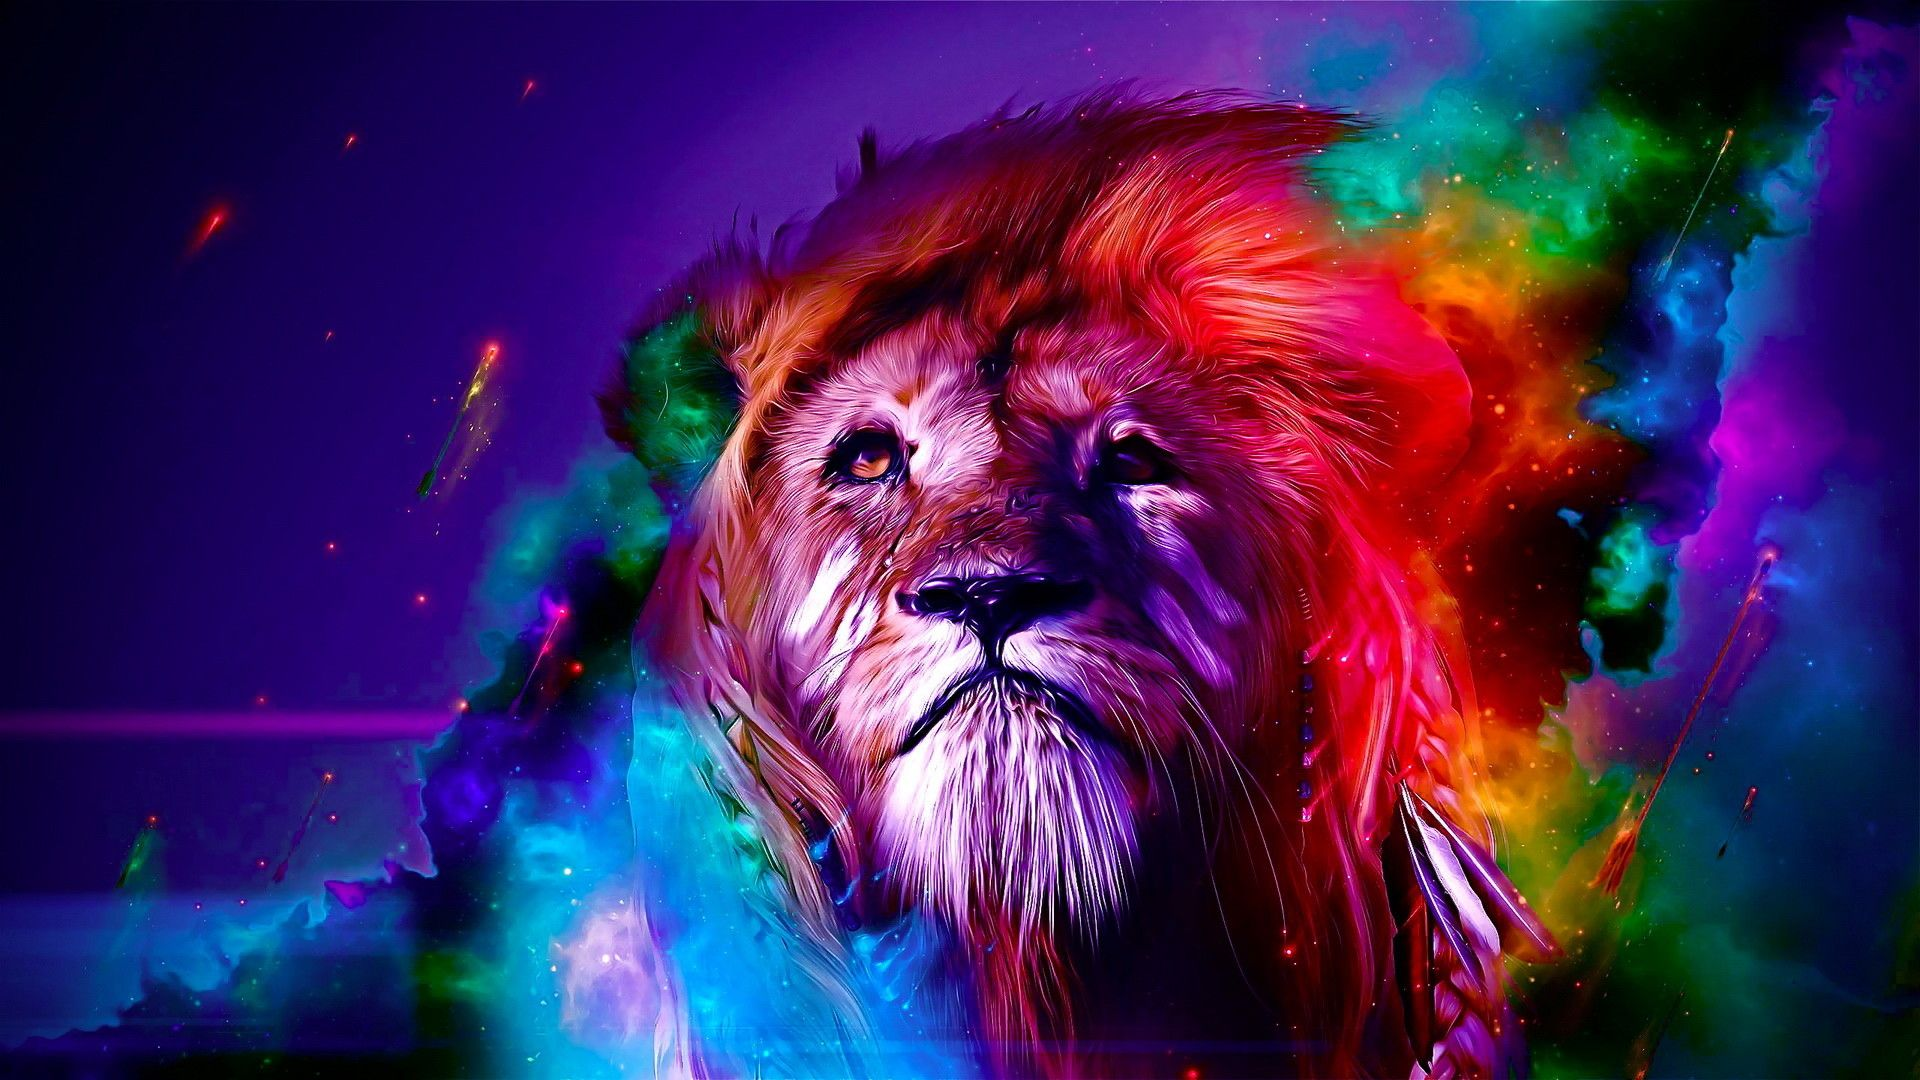 Purple Lion Wallpapers Top Free Purple Lion Backgrounds Wallpaperaccess Download, share or upload your own one! purple lion wallpapers top free